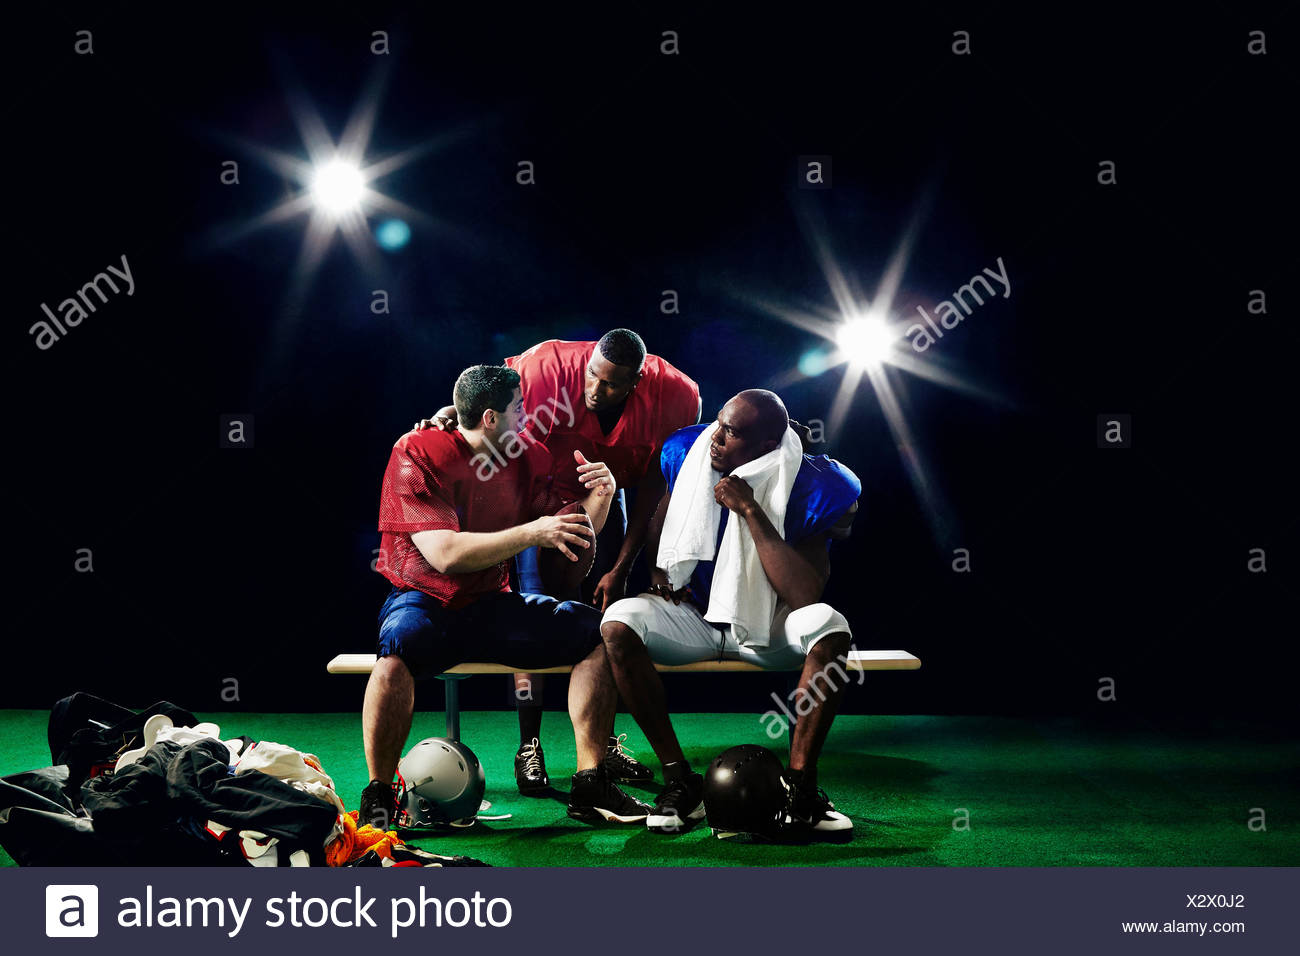 American footballers sitting on bench talking - Stock Image